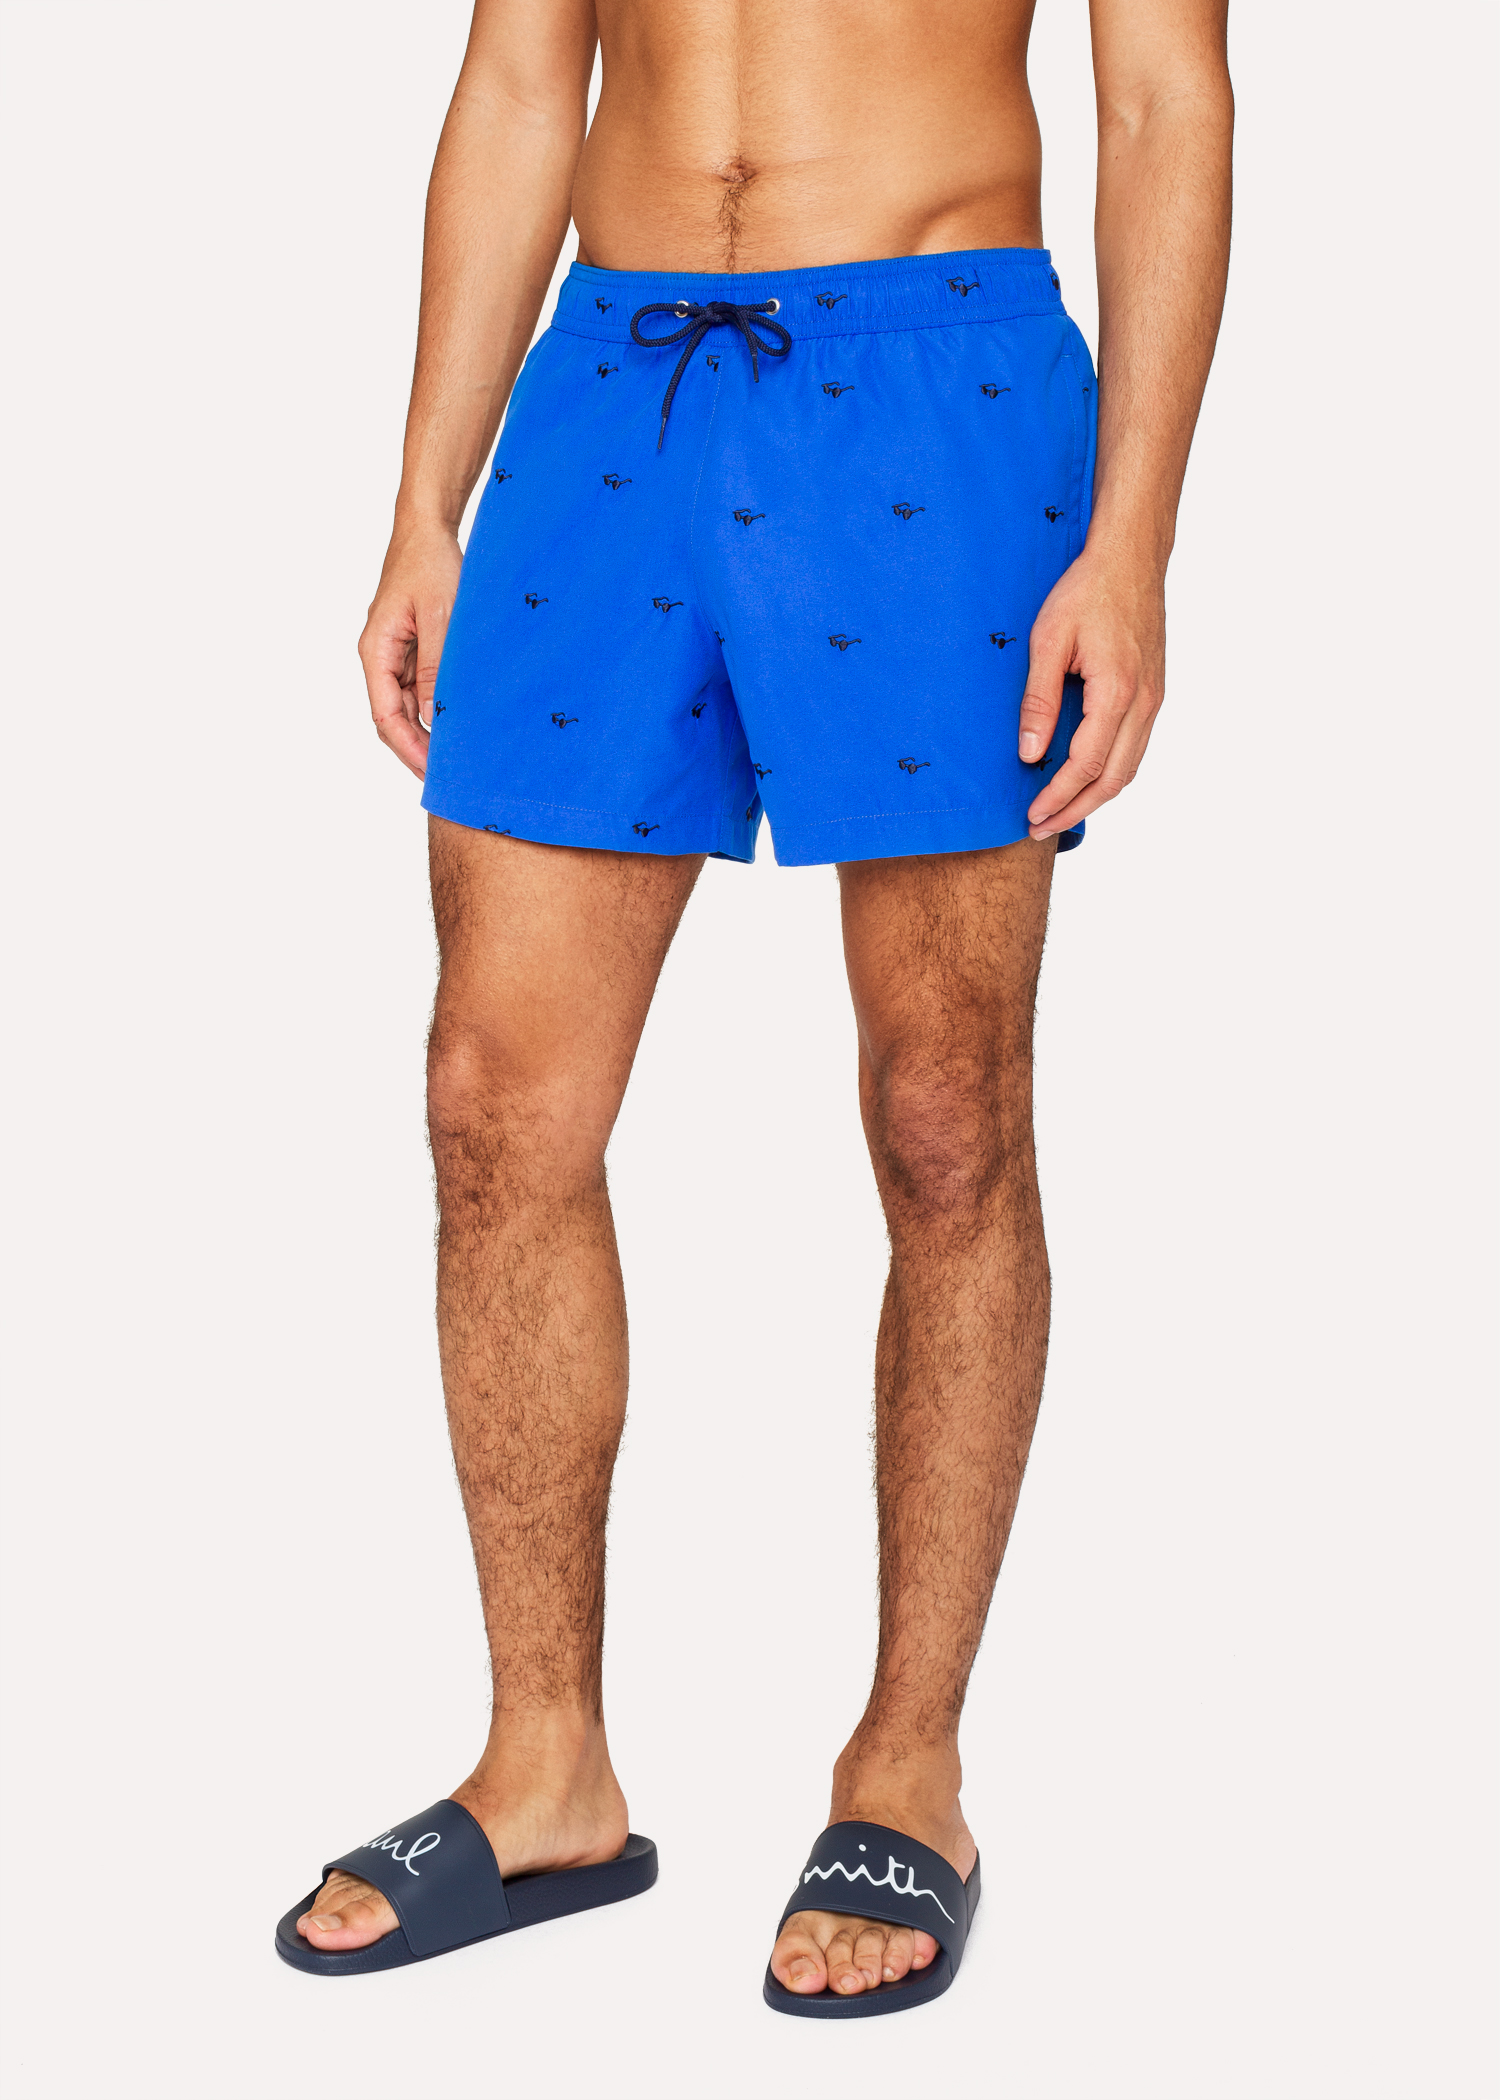 f992110ae2 Men's Blue Swim Shorts With 'Sunglasses' Embroidery - Paul Smith